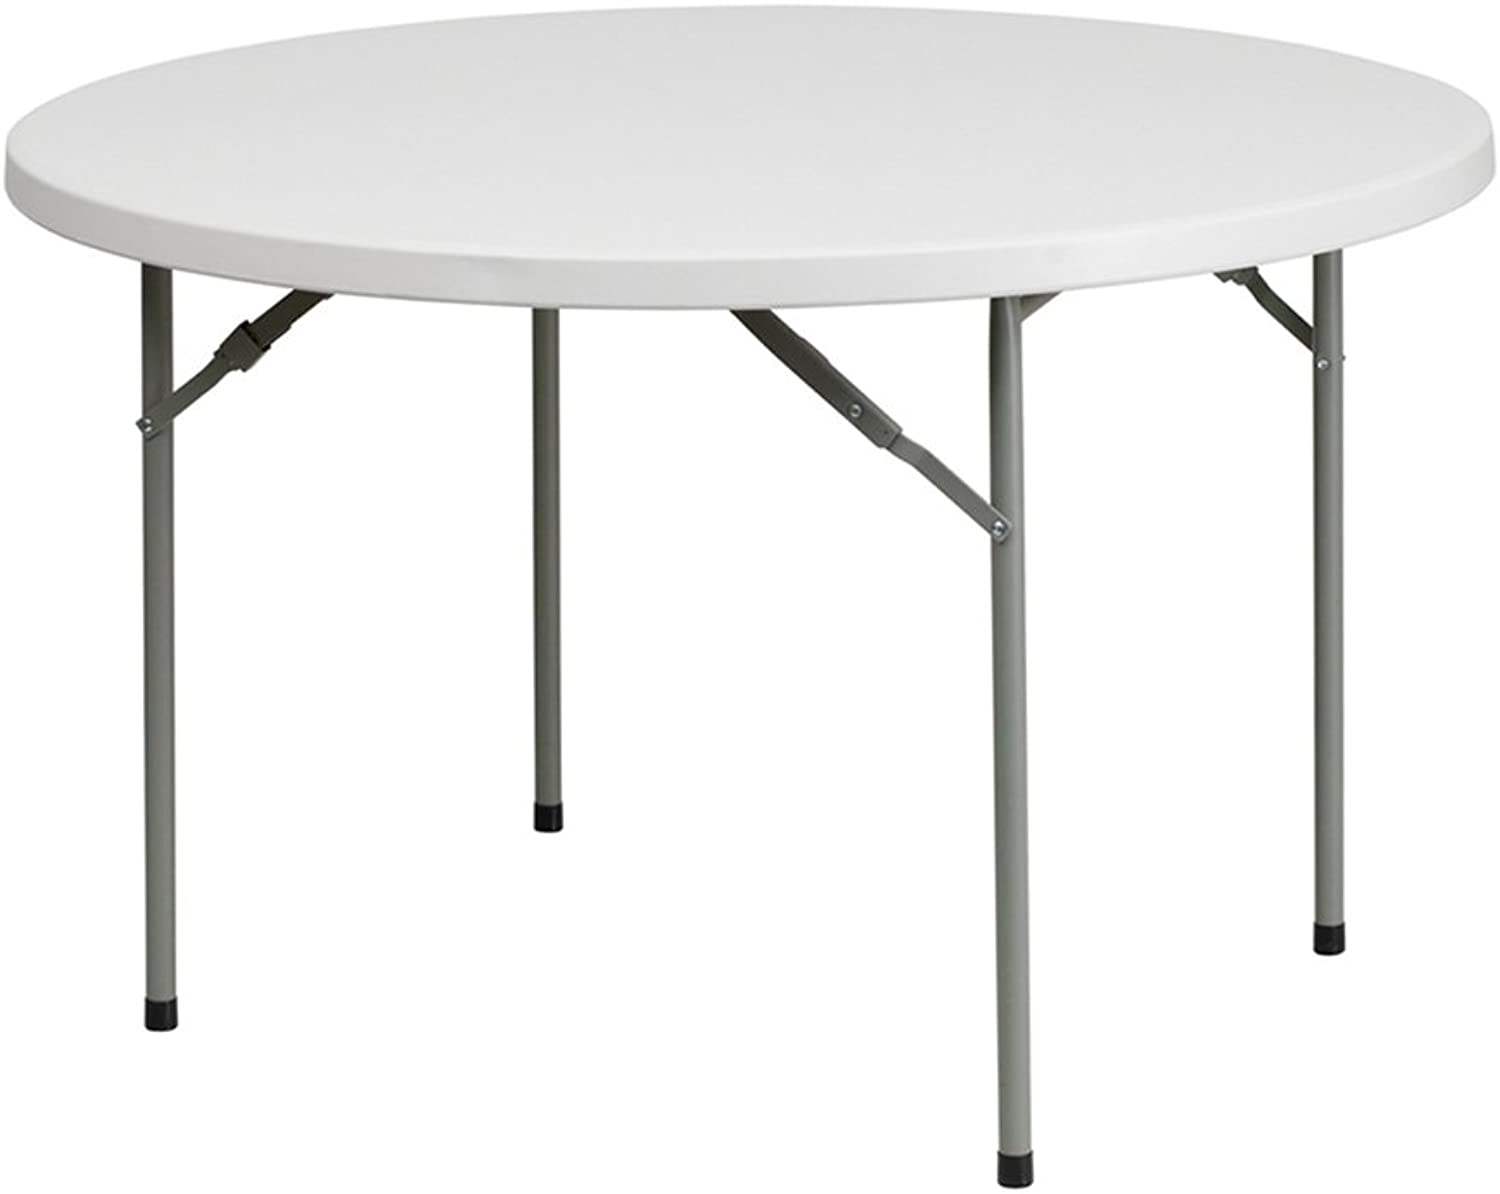 Offex OF-RB-48R-GG Round Granite Plastic Folding Table, 48-Inch, White